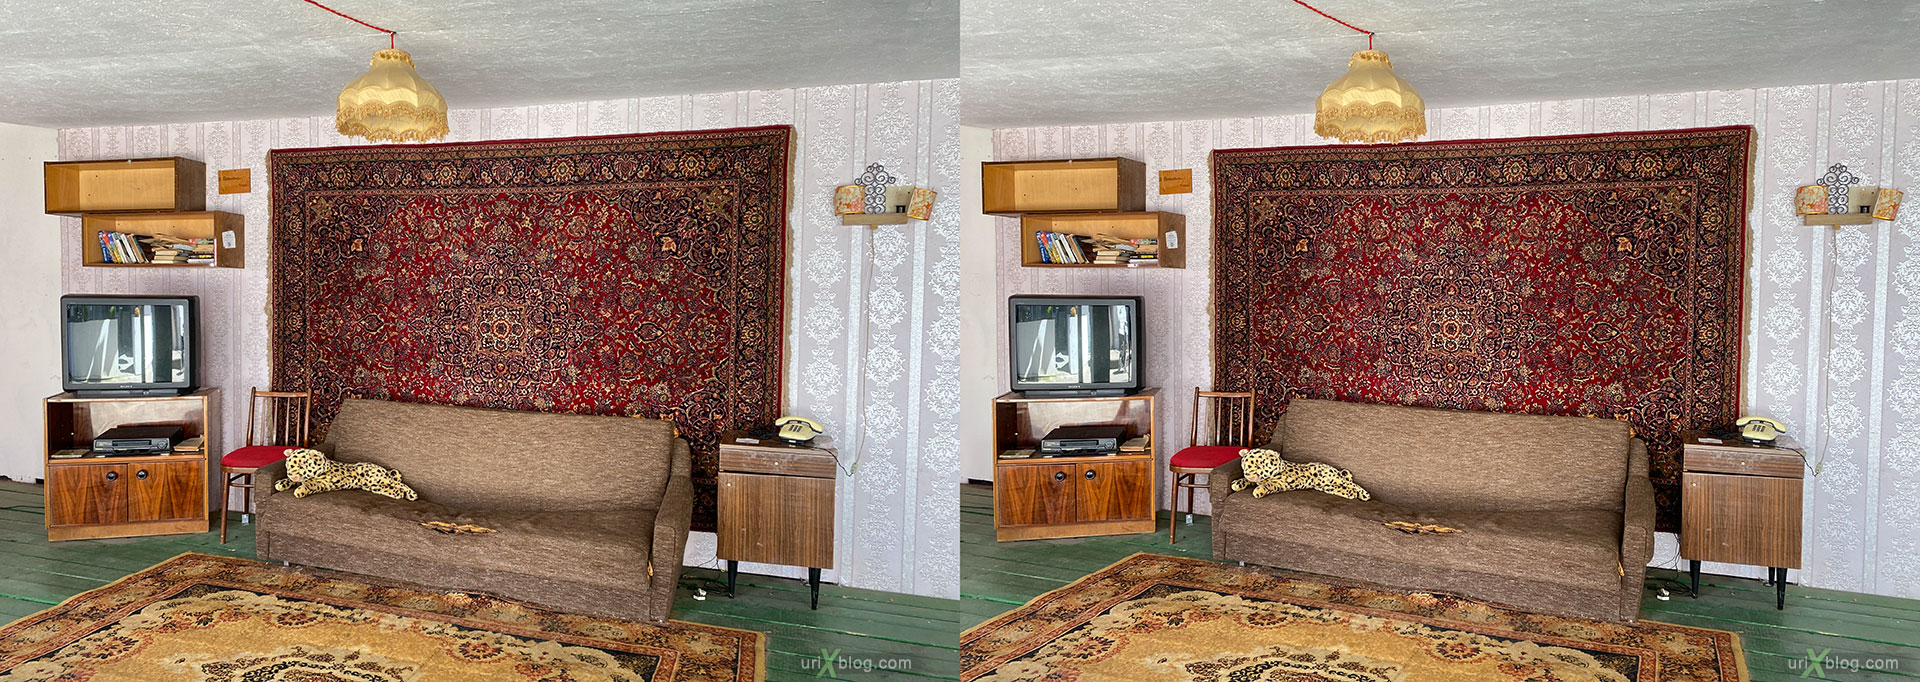 soviet, room, carpet, instastreet, Izmailovi, vernissage, kremlin, Moscow, Russia, 3D, stereo pair, cross-eyed, crossview, cross view stereo pair, stereoscopic